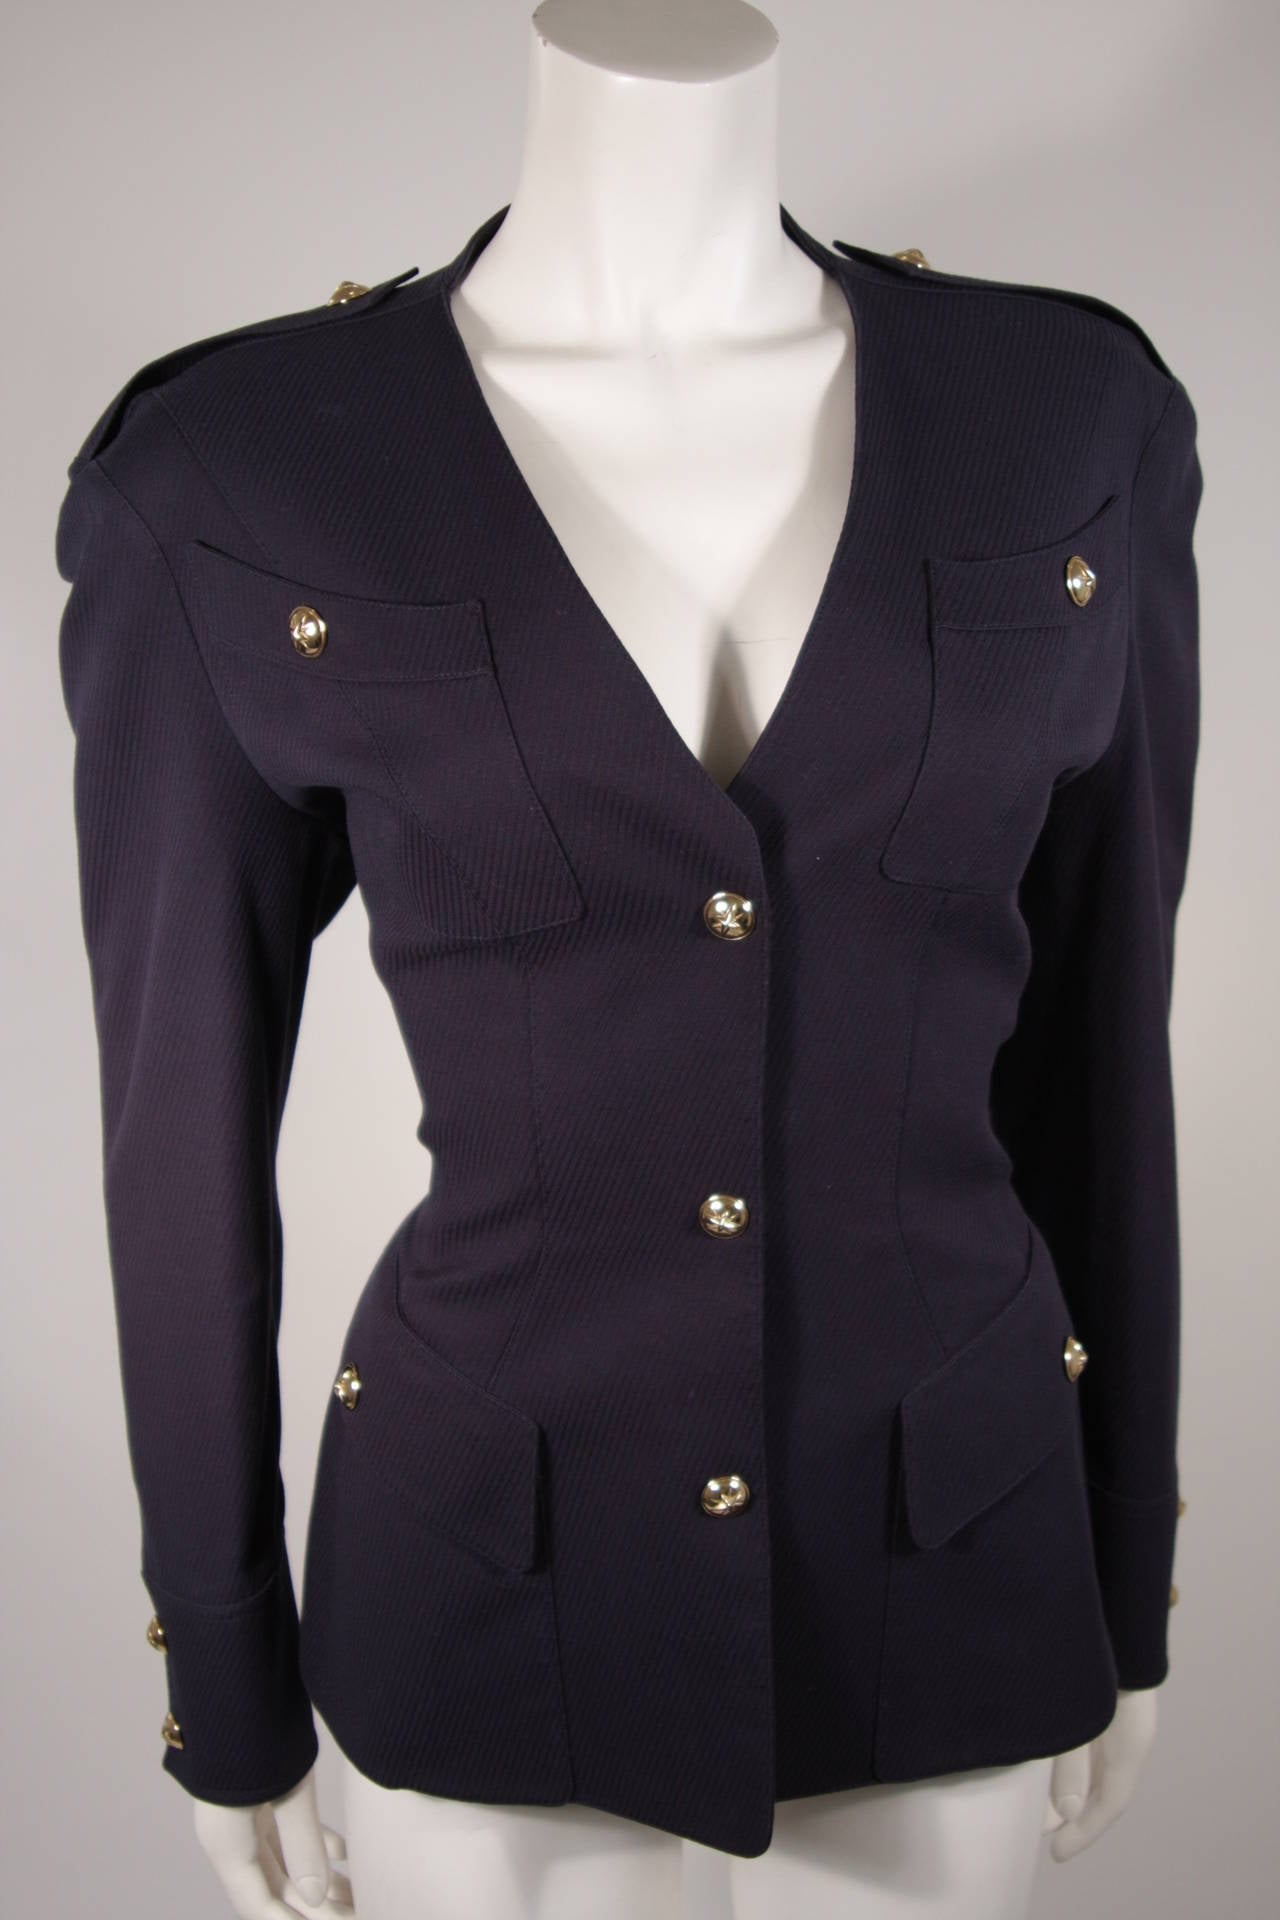 Theirry Mugler Navy Military Inspired Blazer with Gold Buttons Size 42 3